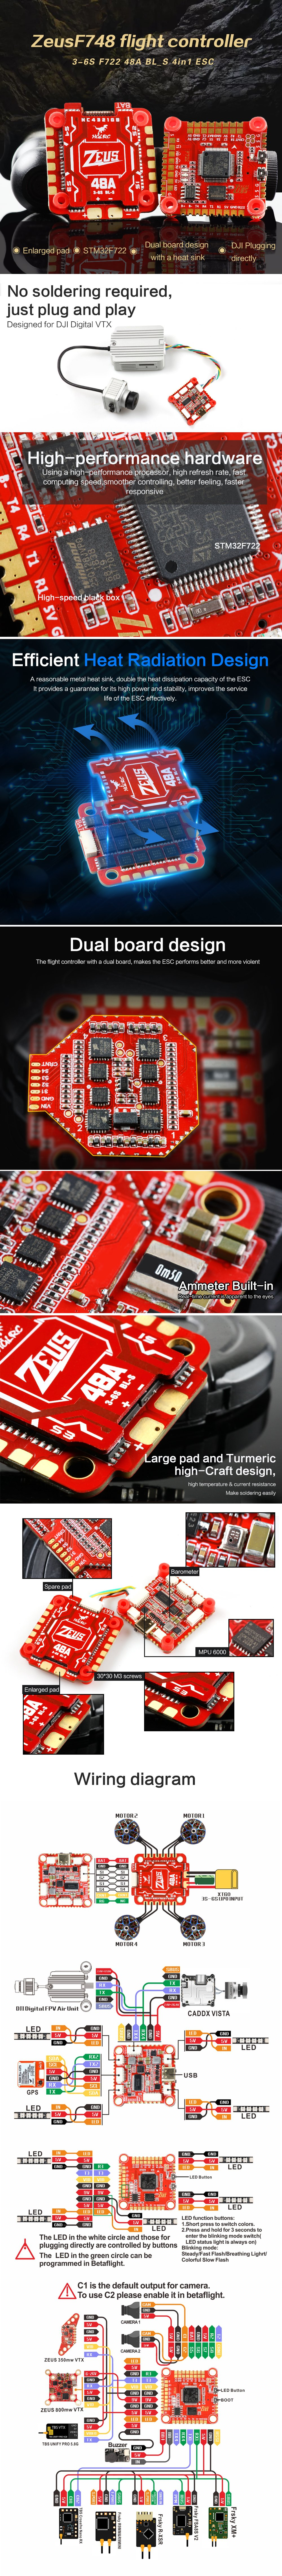 HGLRC Zeus F748 STACK 3-6S F722 Flight Controller 48A BL_S 4-in-1 ESC for FPV Racing Drone - Red Zeus F748 STACK